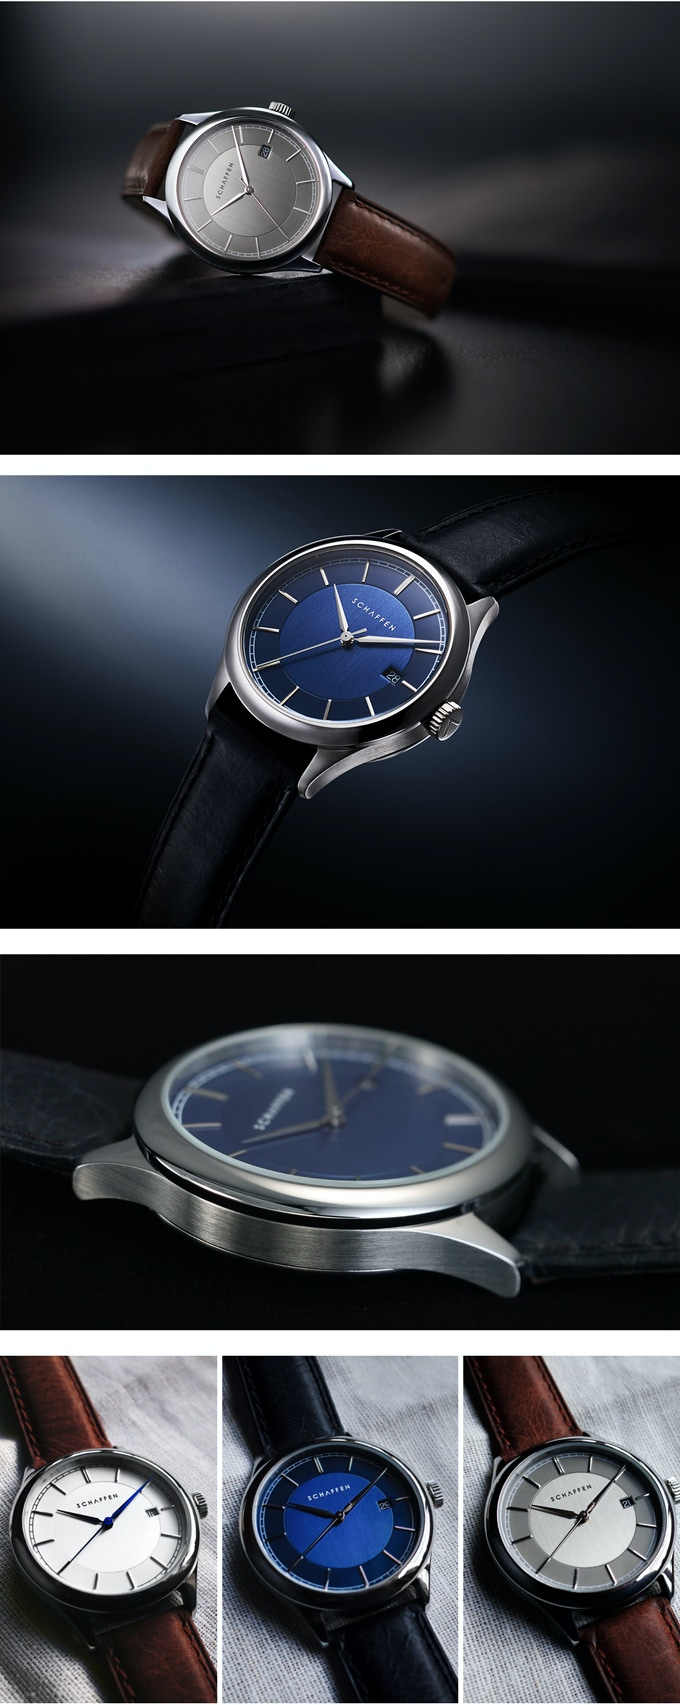 A65 Dress Watch with Silver, Blue & Grey Dials